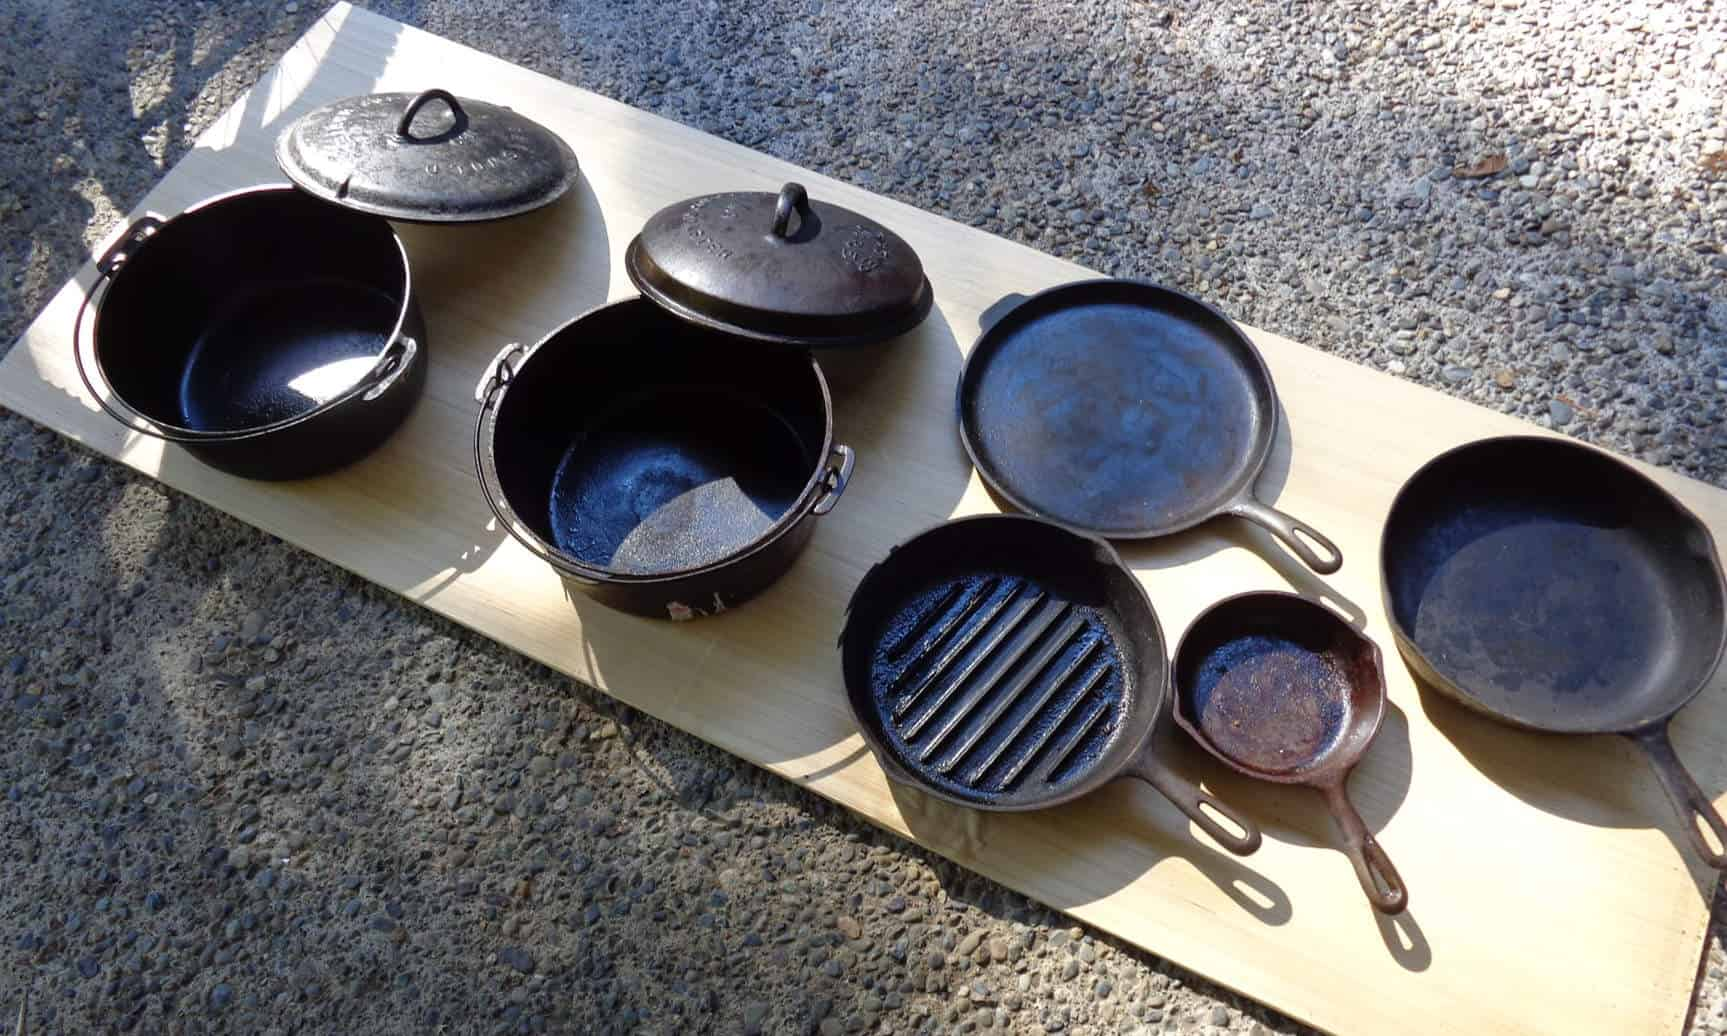 griswolds cast iron skillets